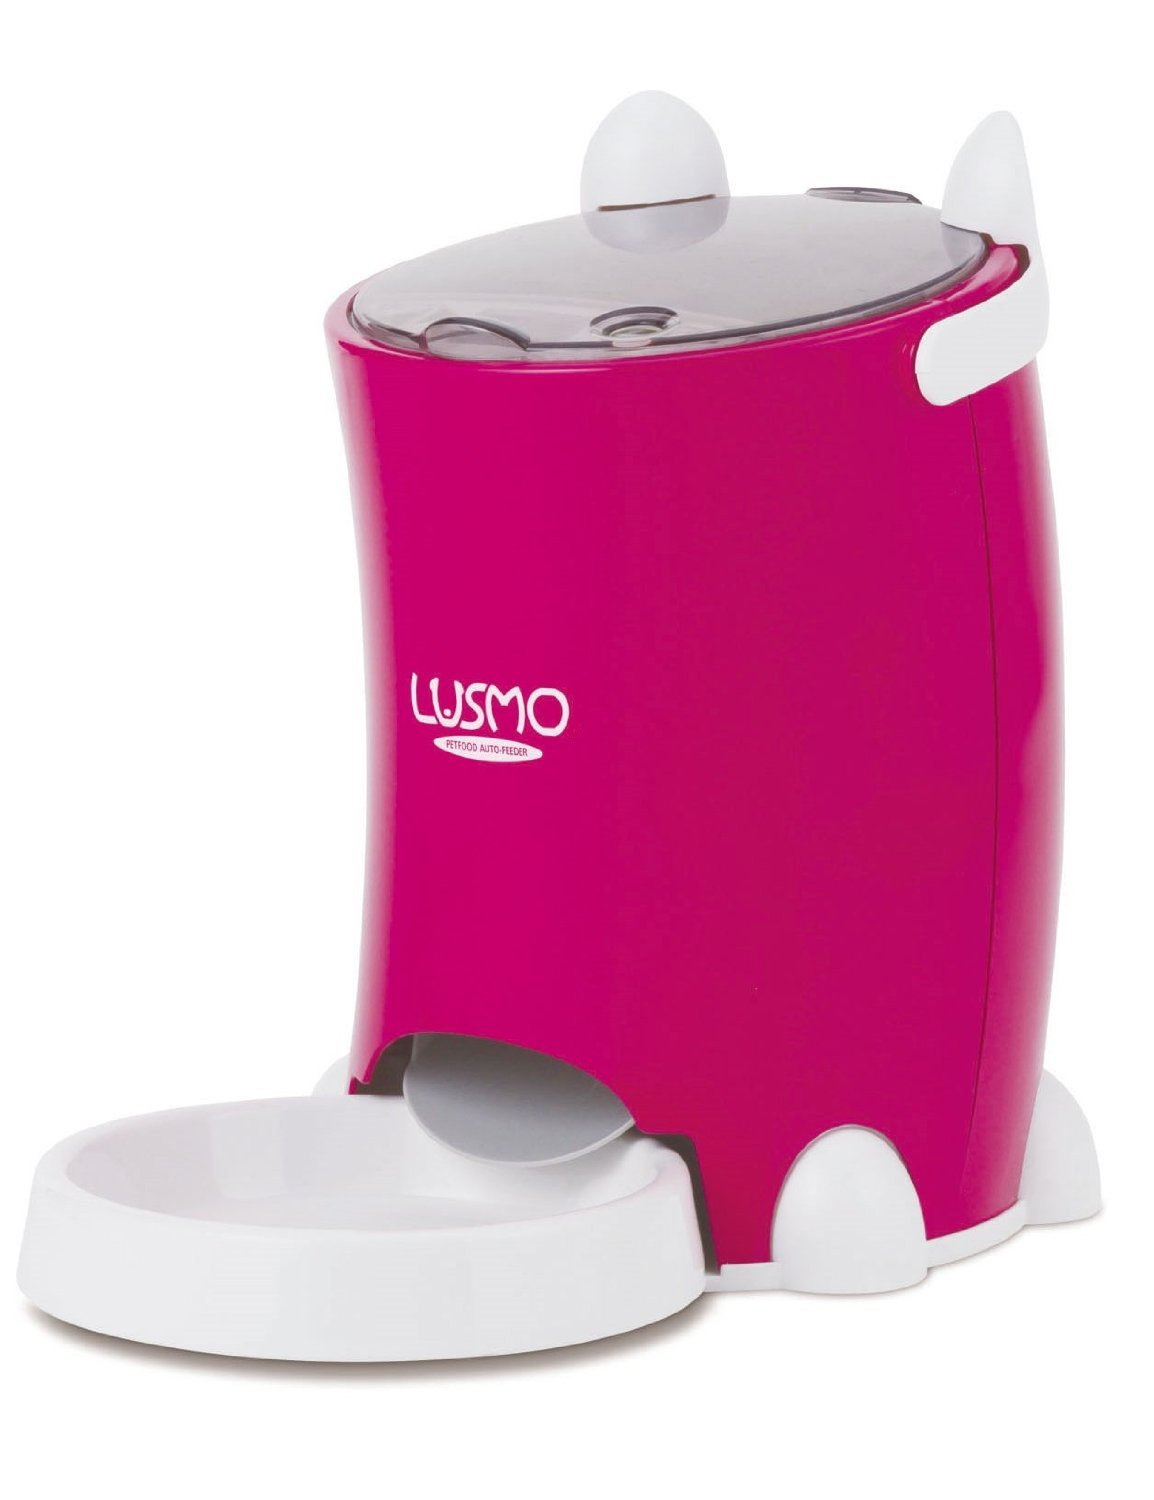 Lusmo Automatic Pet Feeder - English Ver. Red